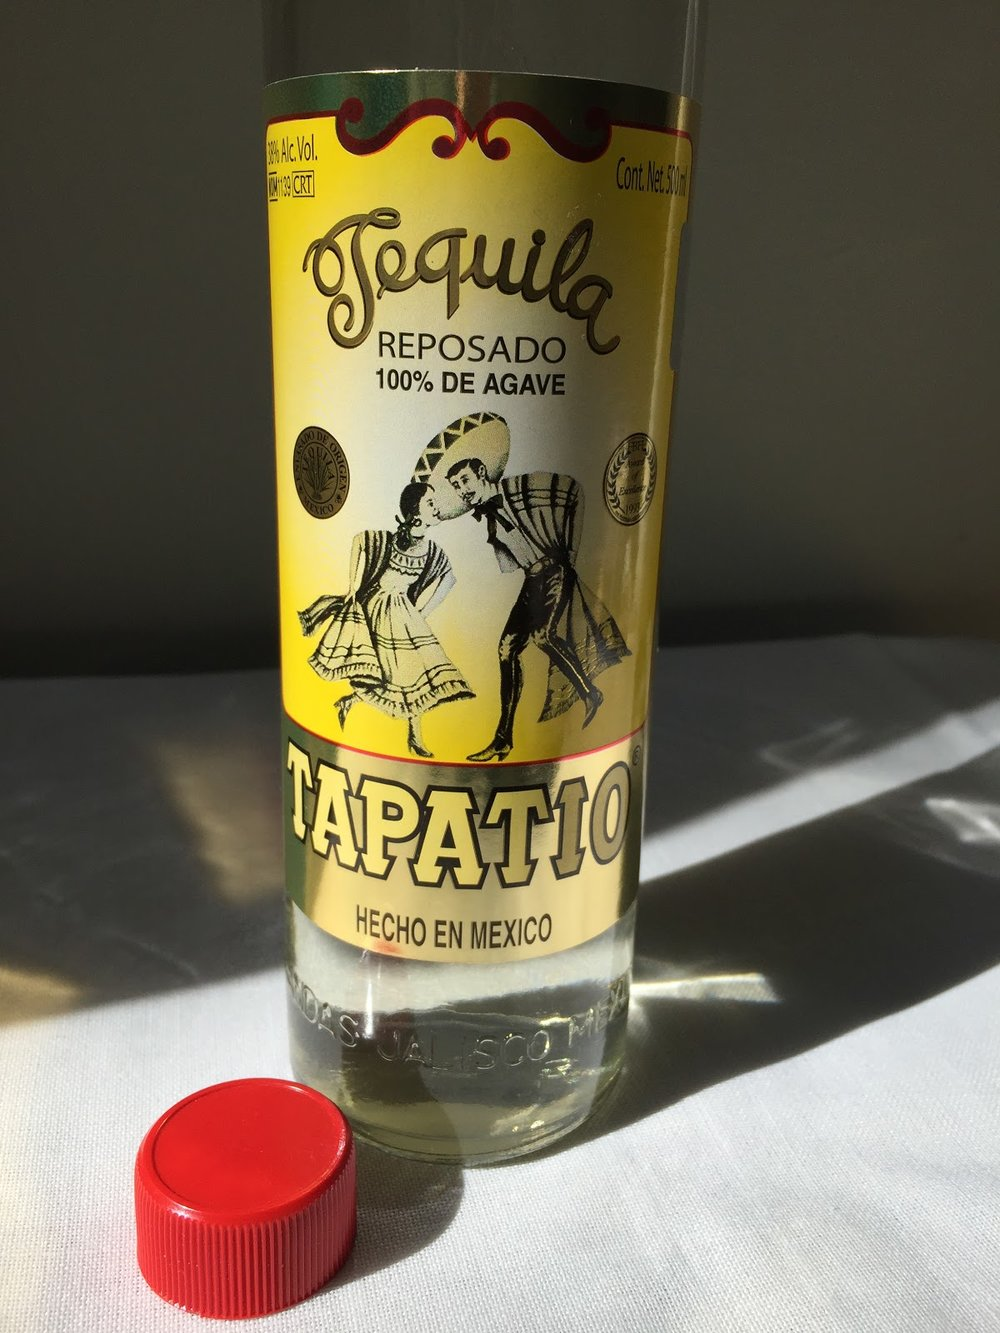 Tapatio, 100% agave tequila